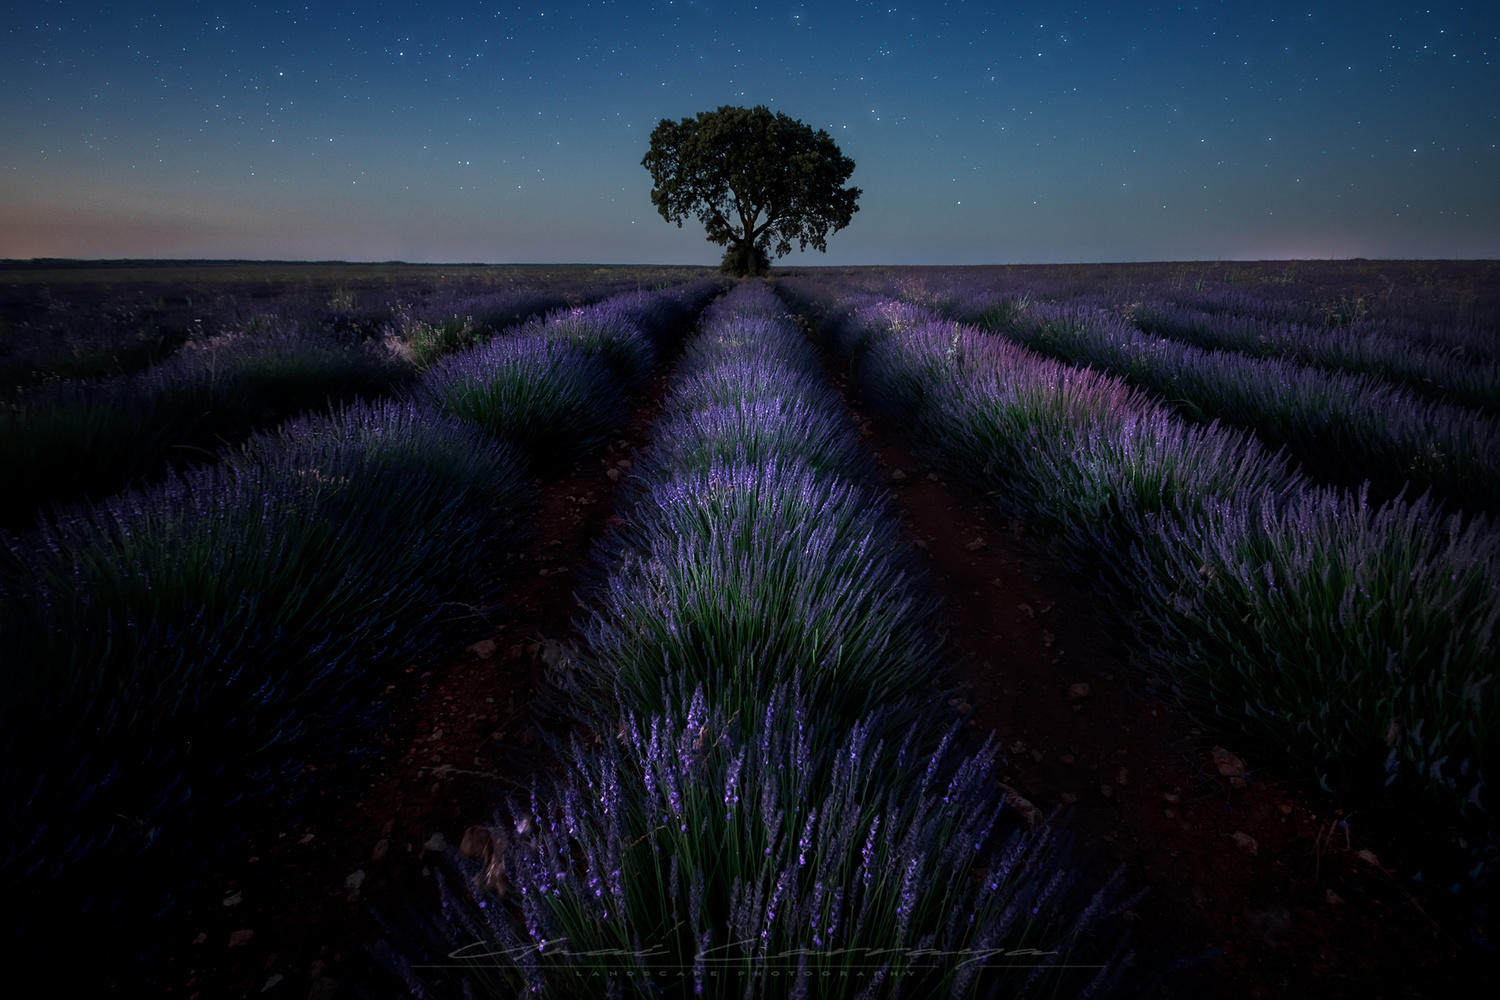 Lonely in the lavender fields by Unai Larraya